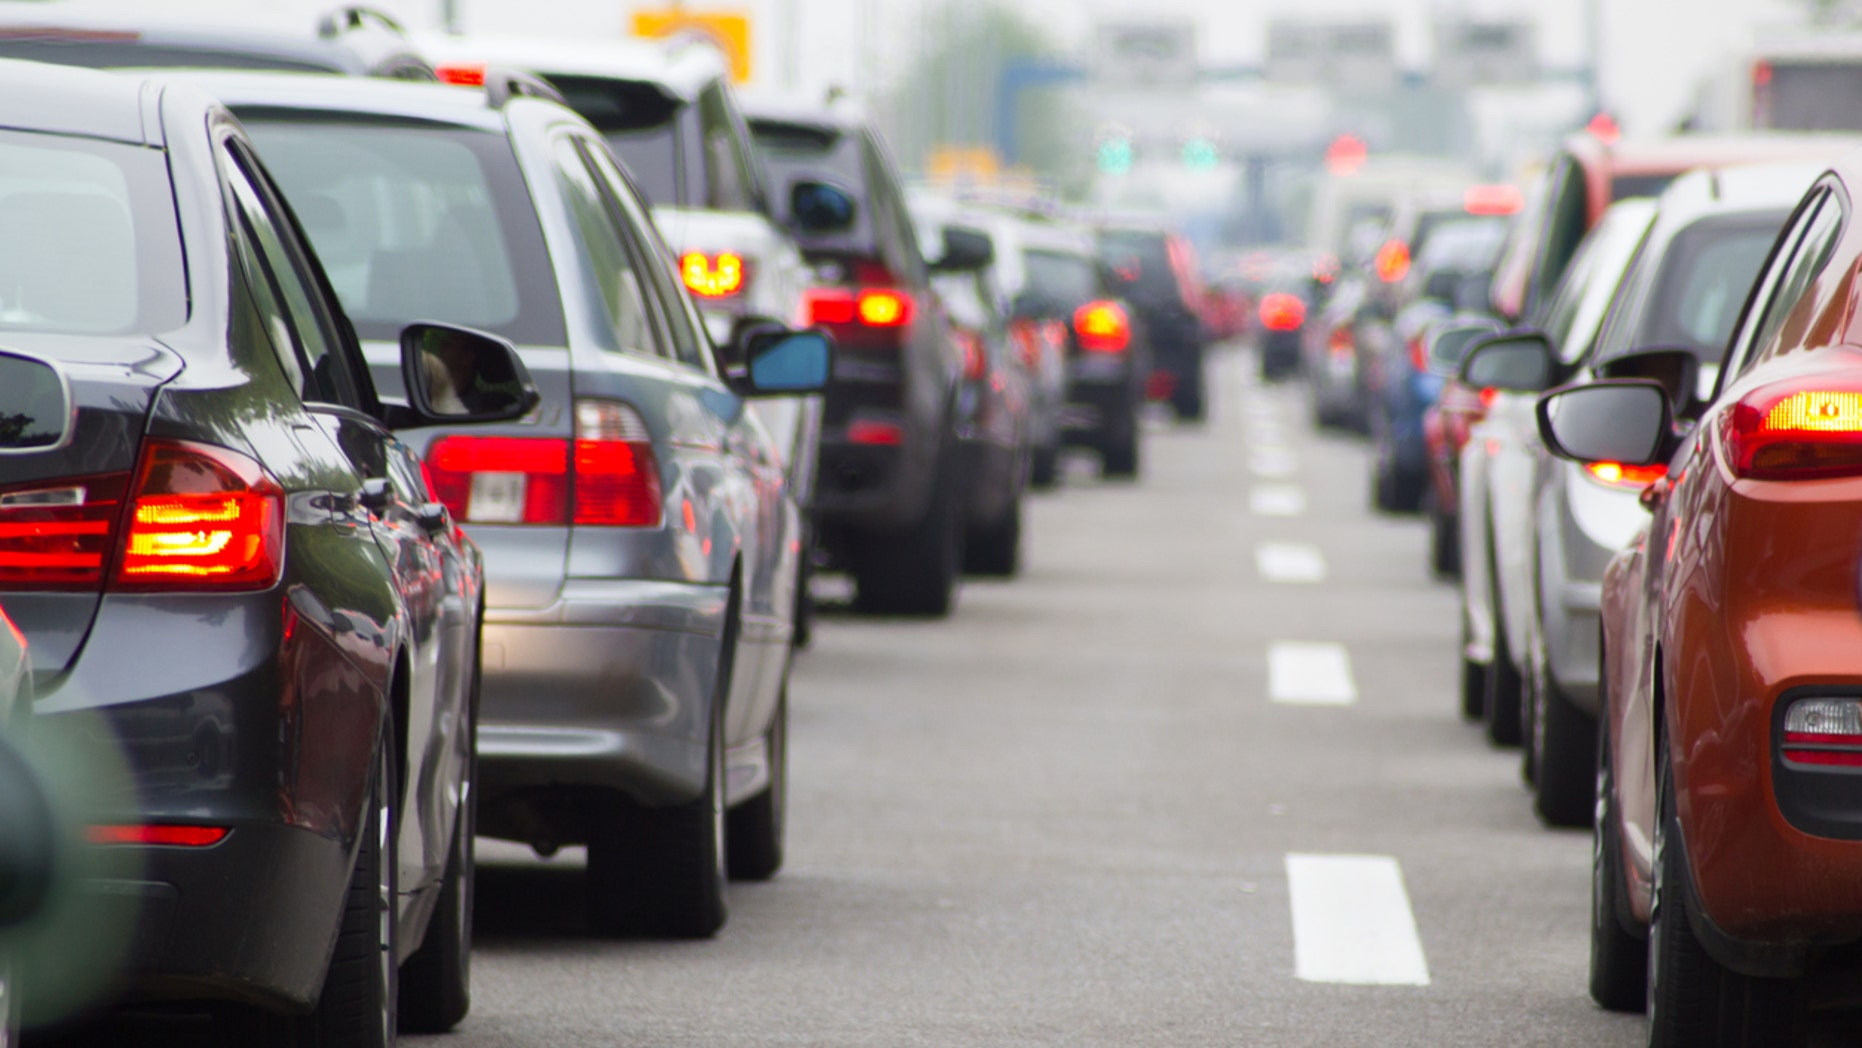 Holiday travel is expected to be the highest ever with commute times triple what they usually are.